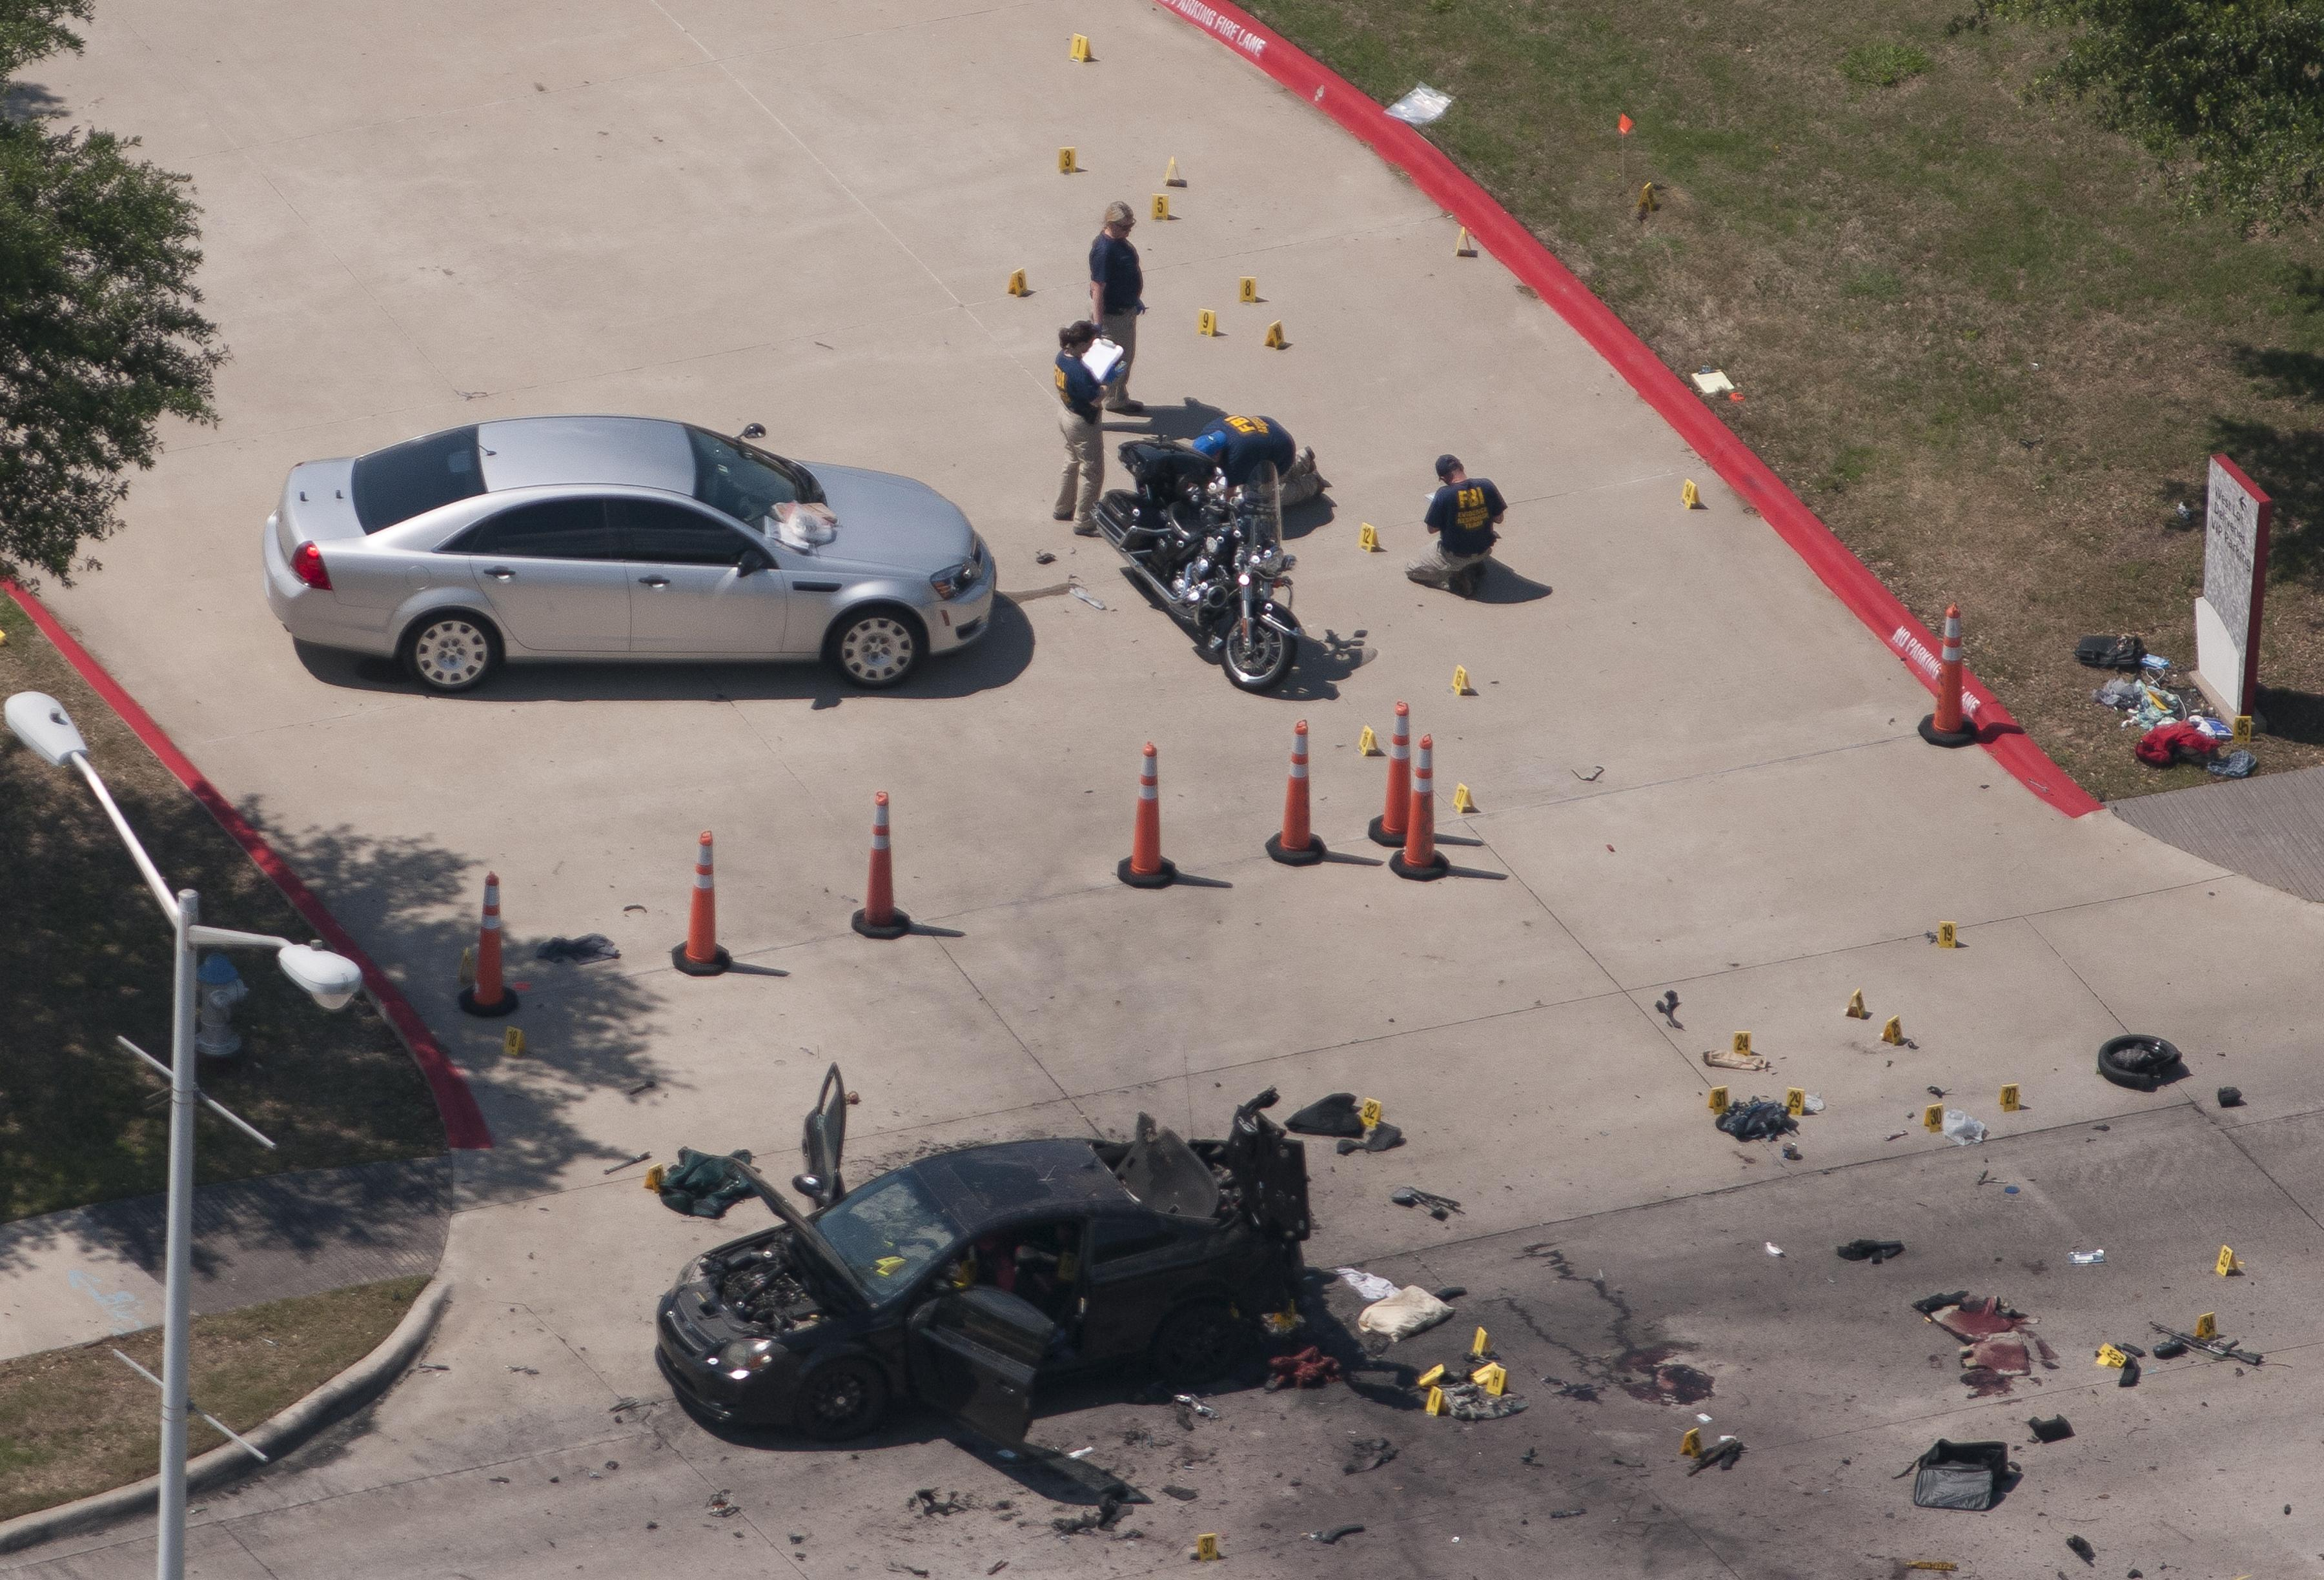 GarlandTexasShooting_May4